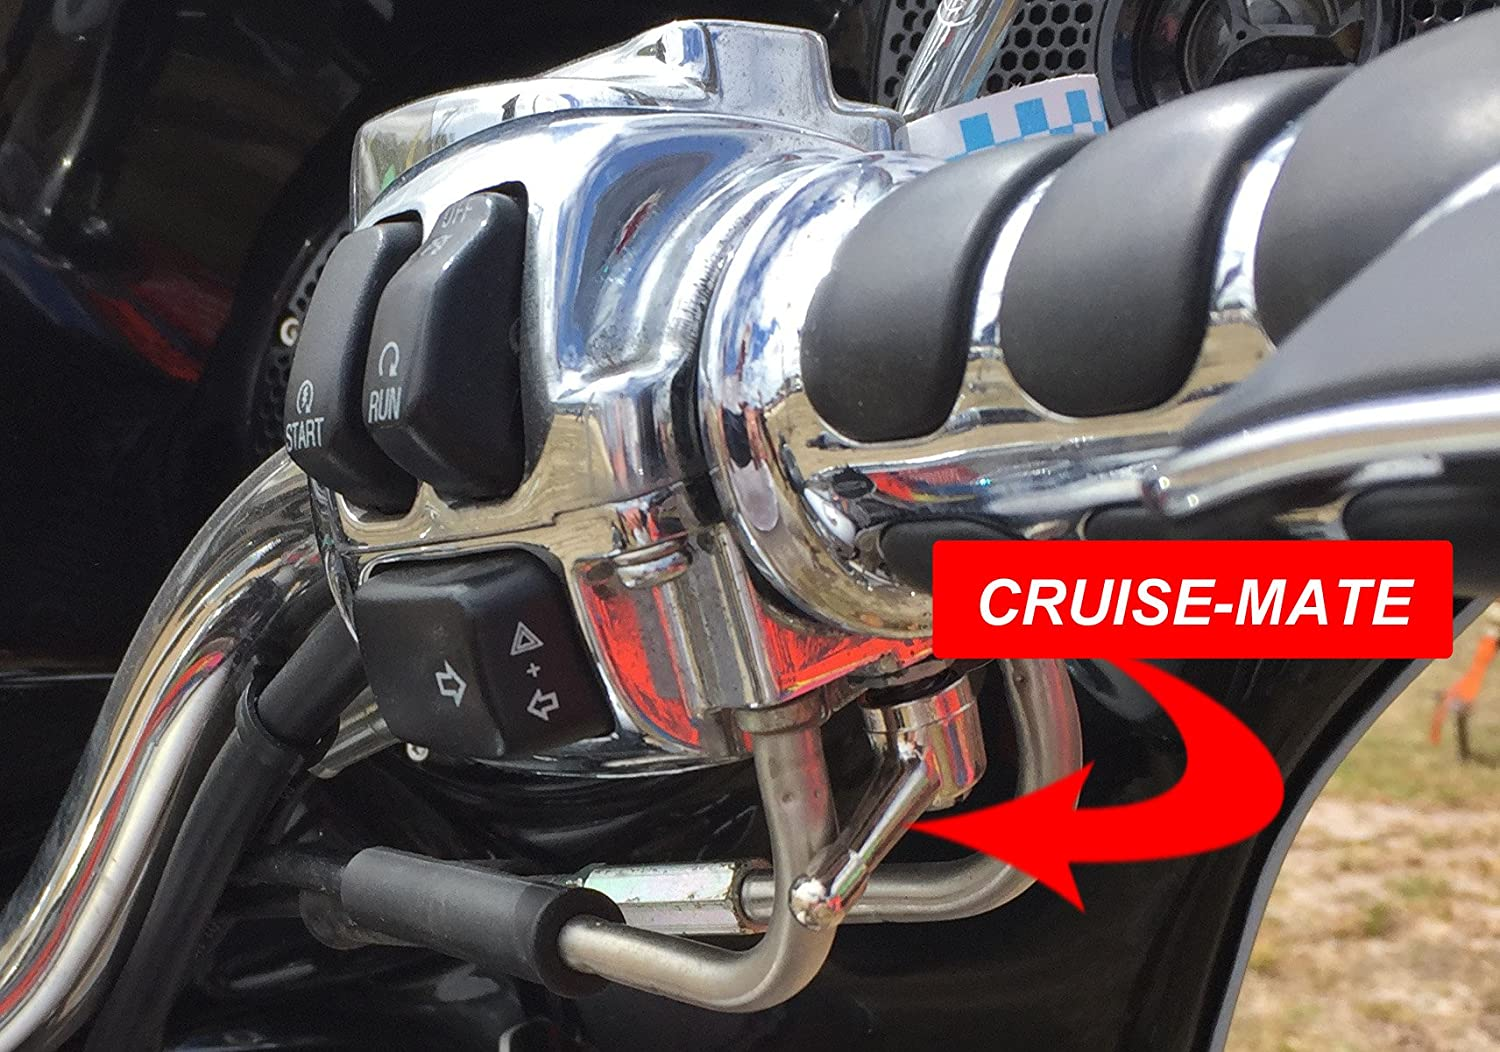 Present Cruise-Mate Chrome for Harley-Davidson motorcycles 1996 except 2014 + touring models Road King, Road Glide, Street Glide, Electra Glide